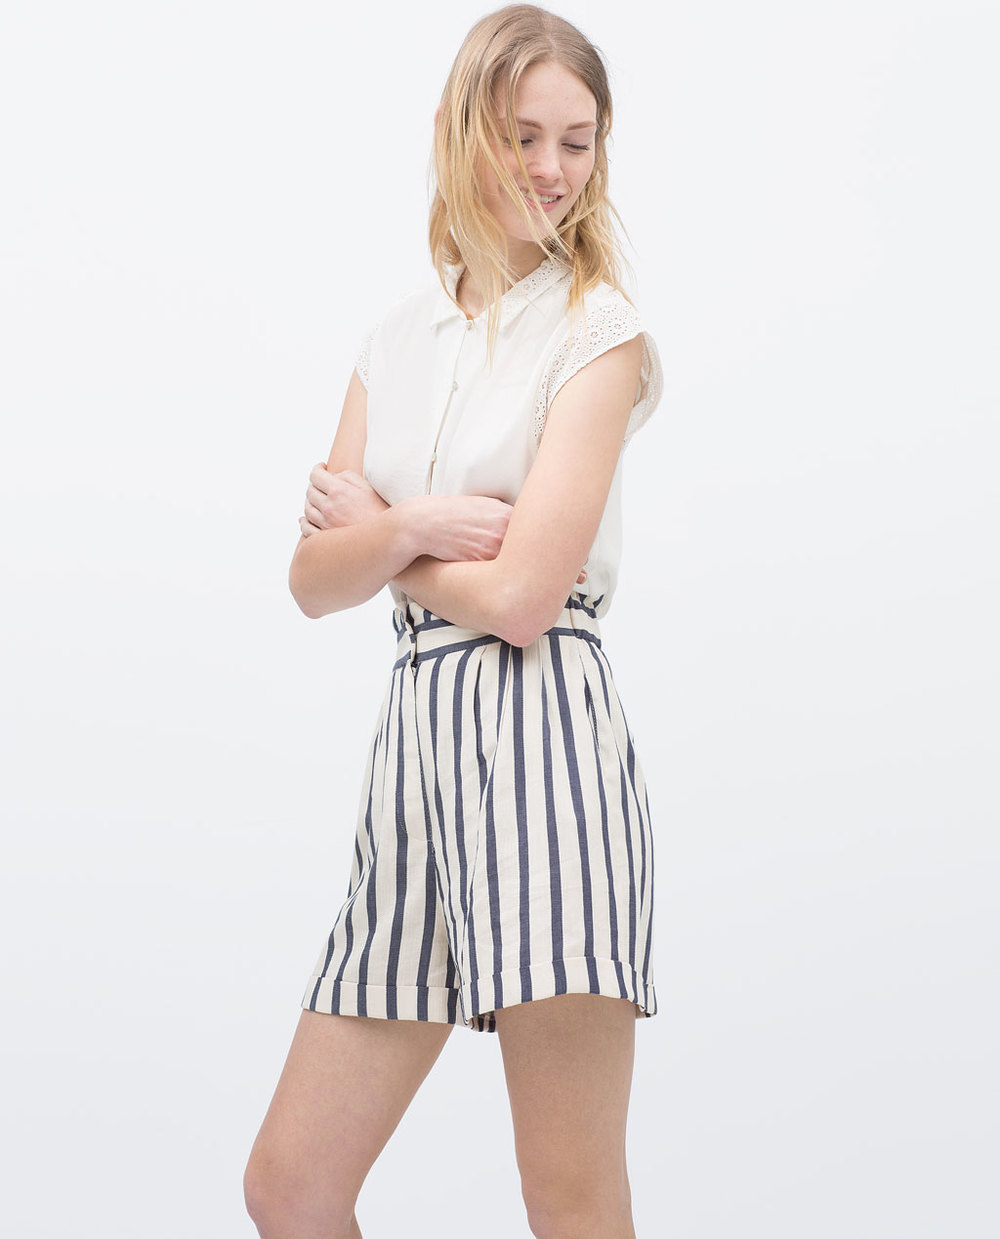 SAILOR SHORTS 35.99 USD